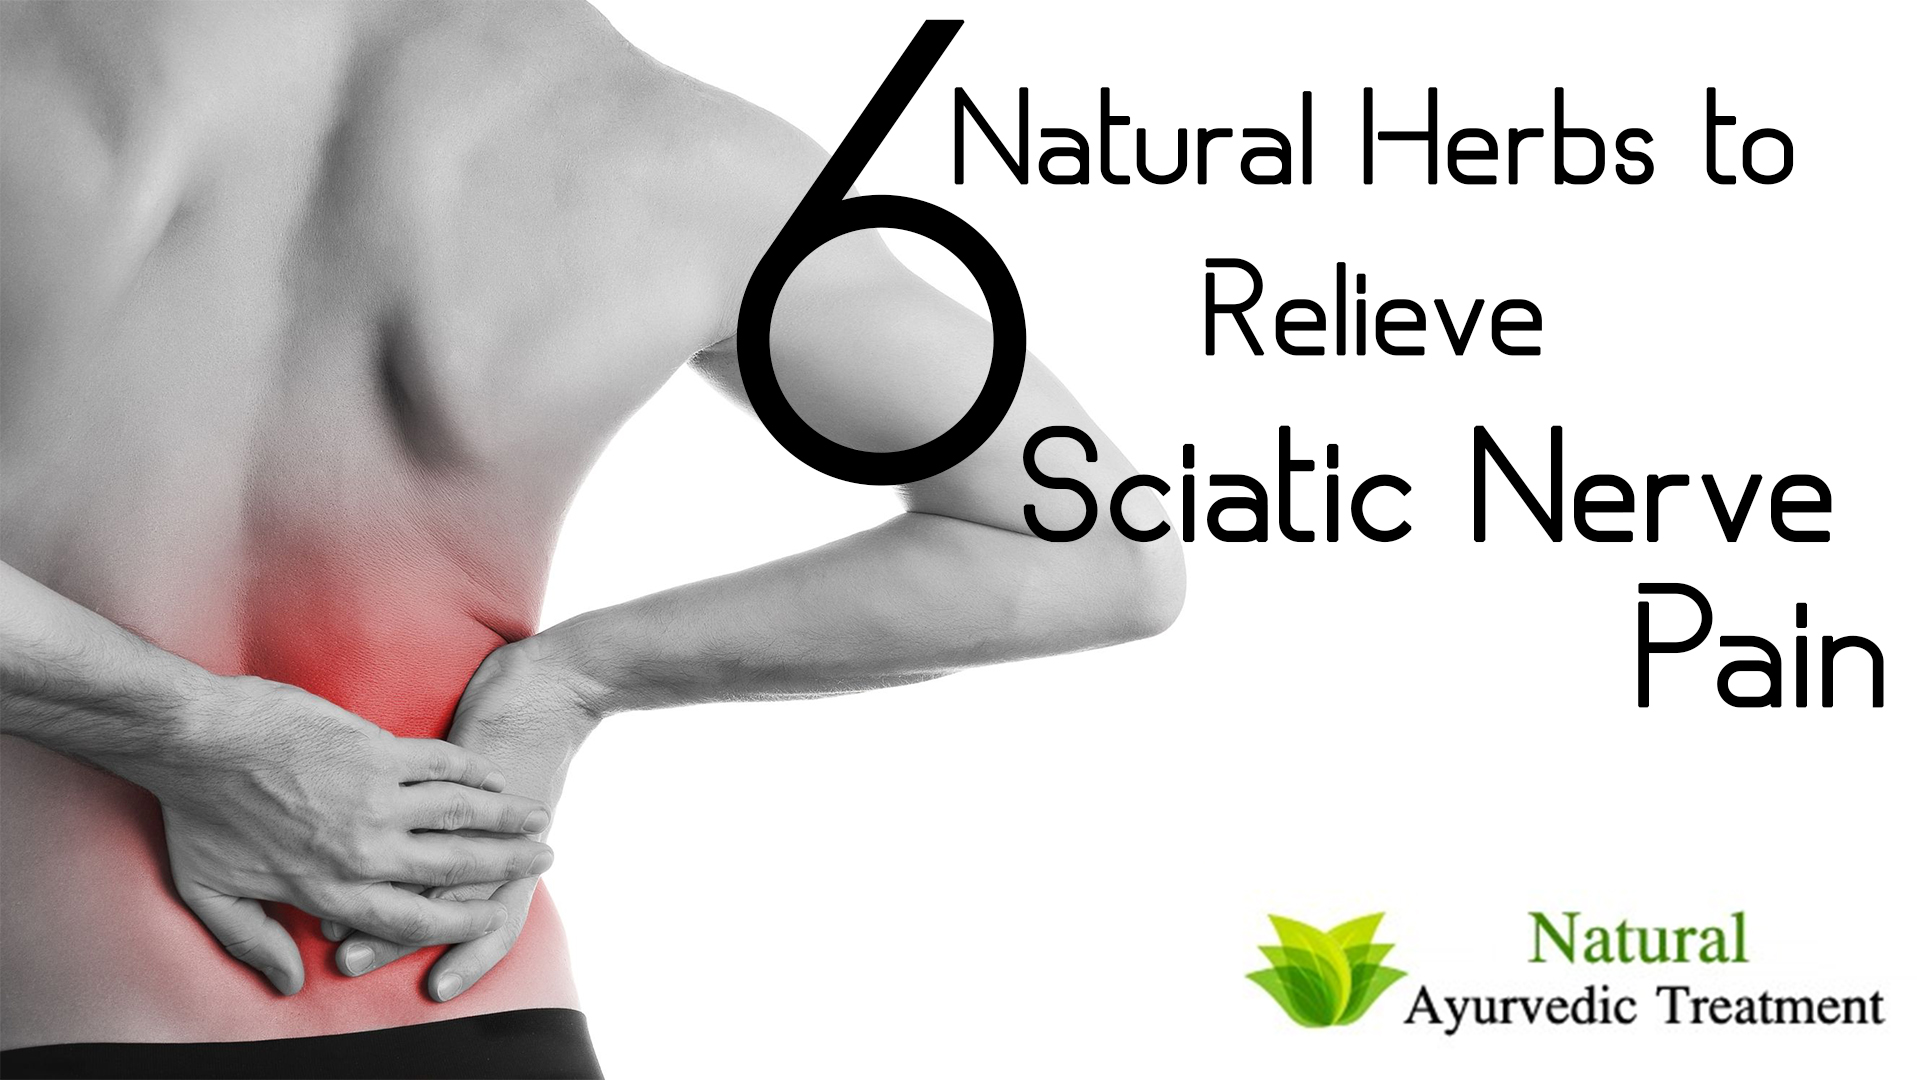 6 Natural Herbs to Relieve Sciatic Nerve Pain